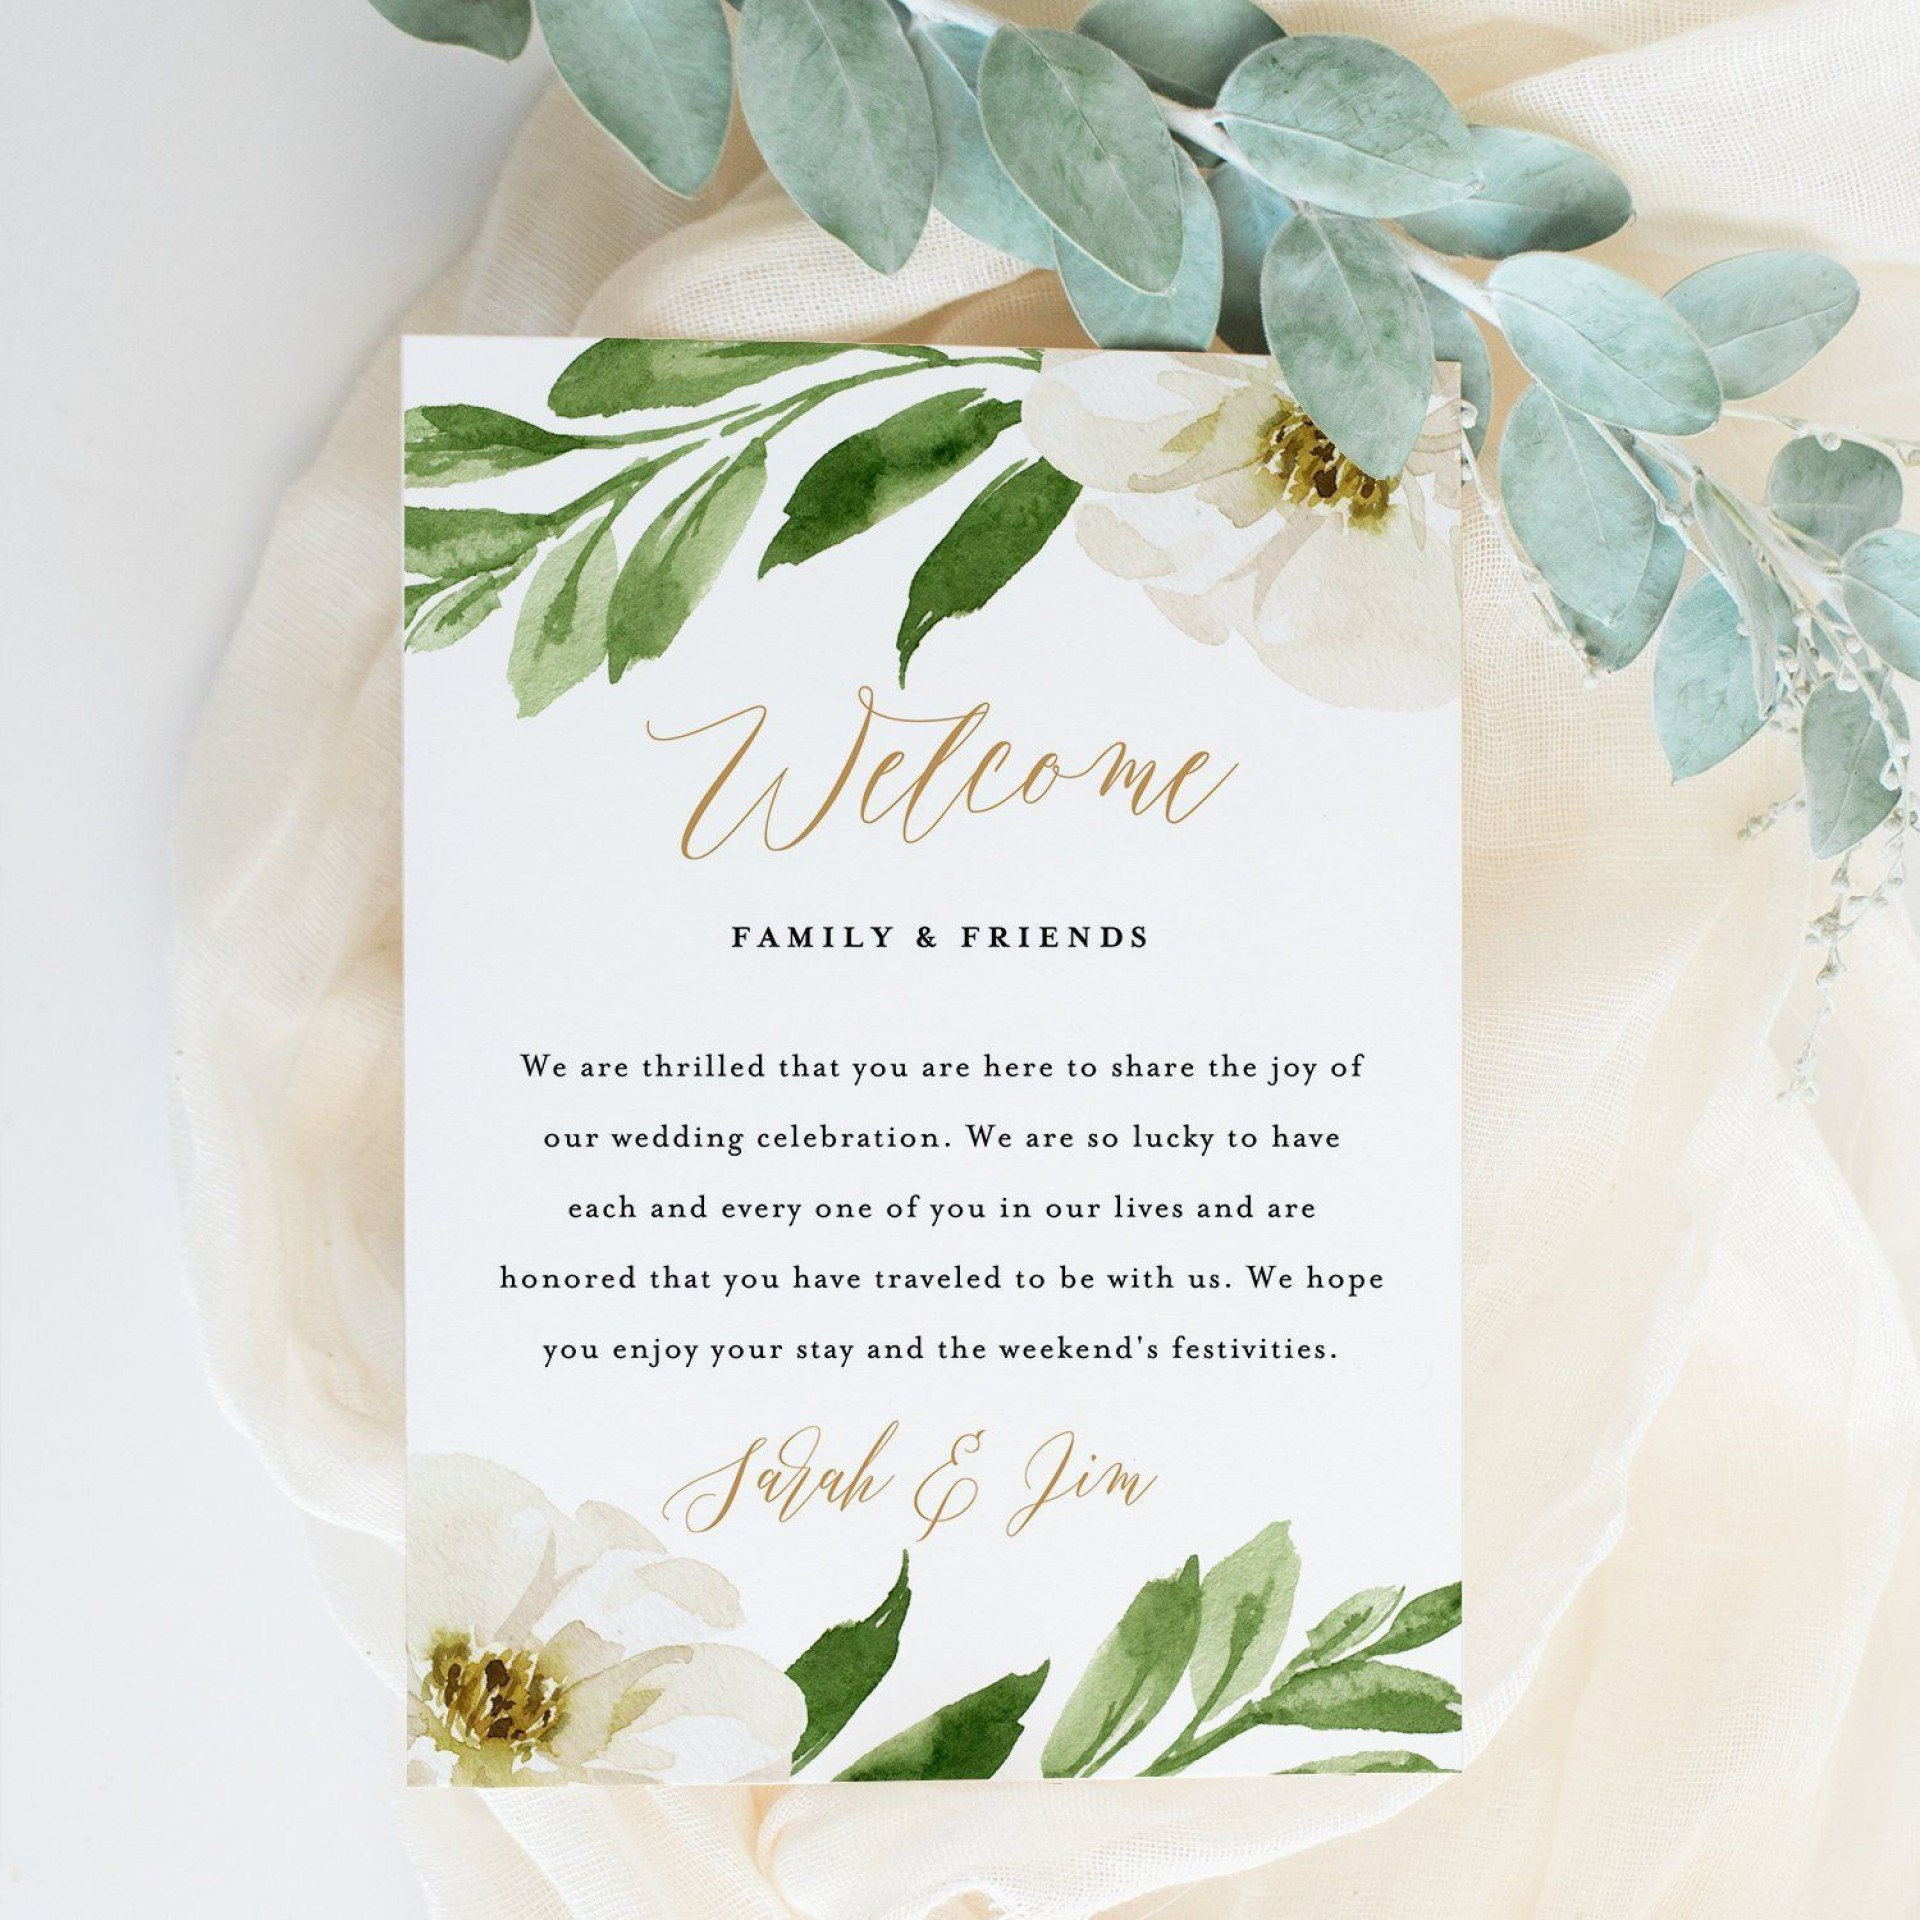 000 Surprising Wedding Welcome Letter Template Download High Definition 1920